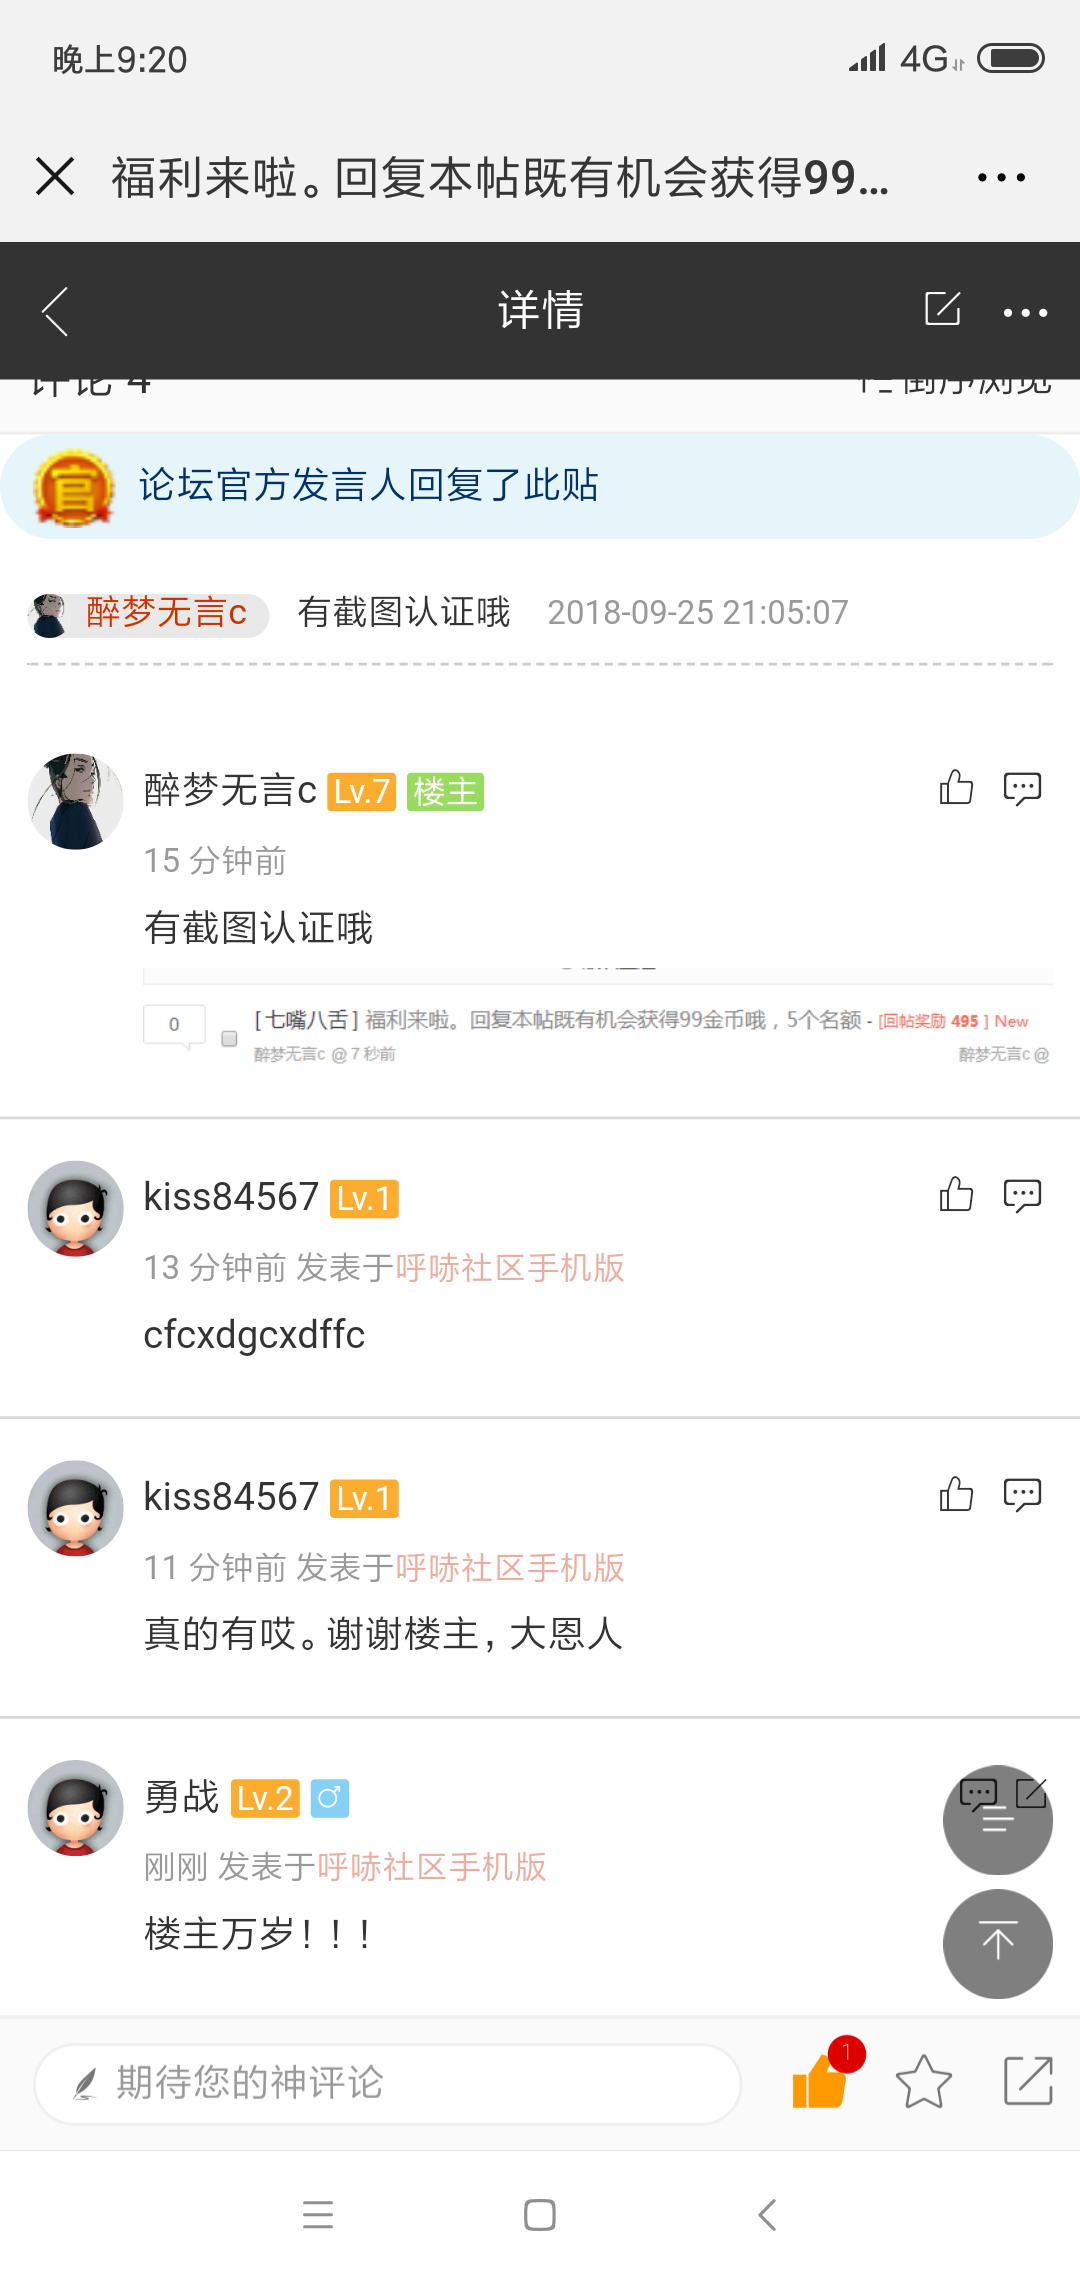 Screenshot_2018-09-25-21-20-54-110_com.tencent.mm.png